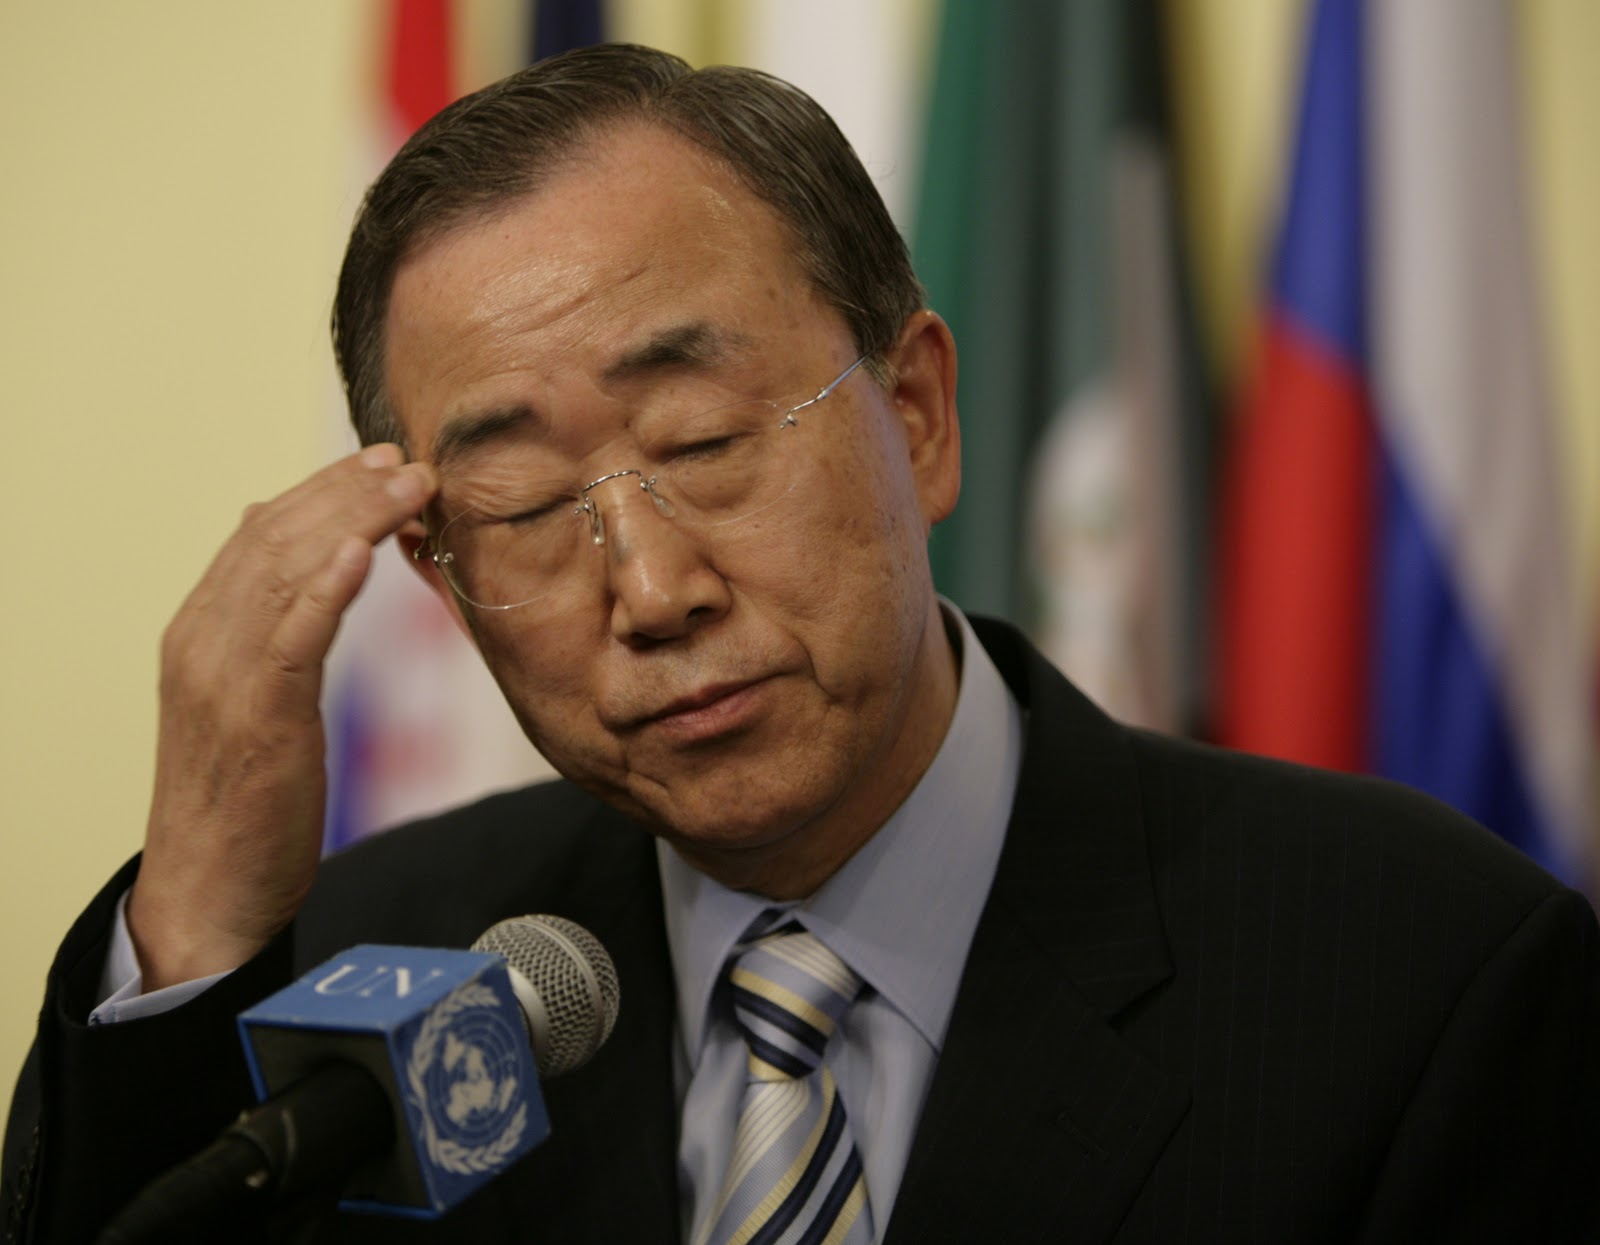 Indo-Pak bilateral relations can only be improved through dialogue: Ban Ki-moon